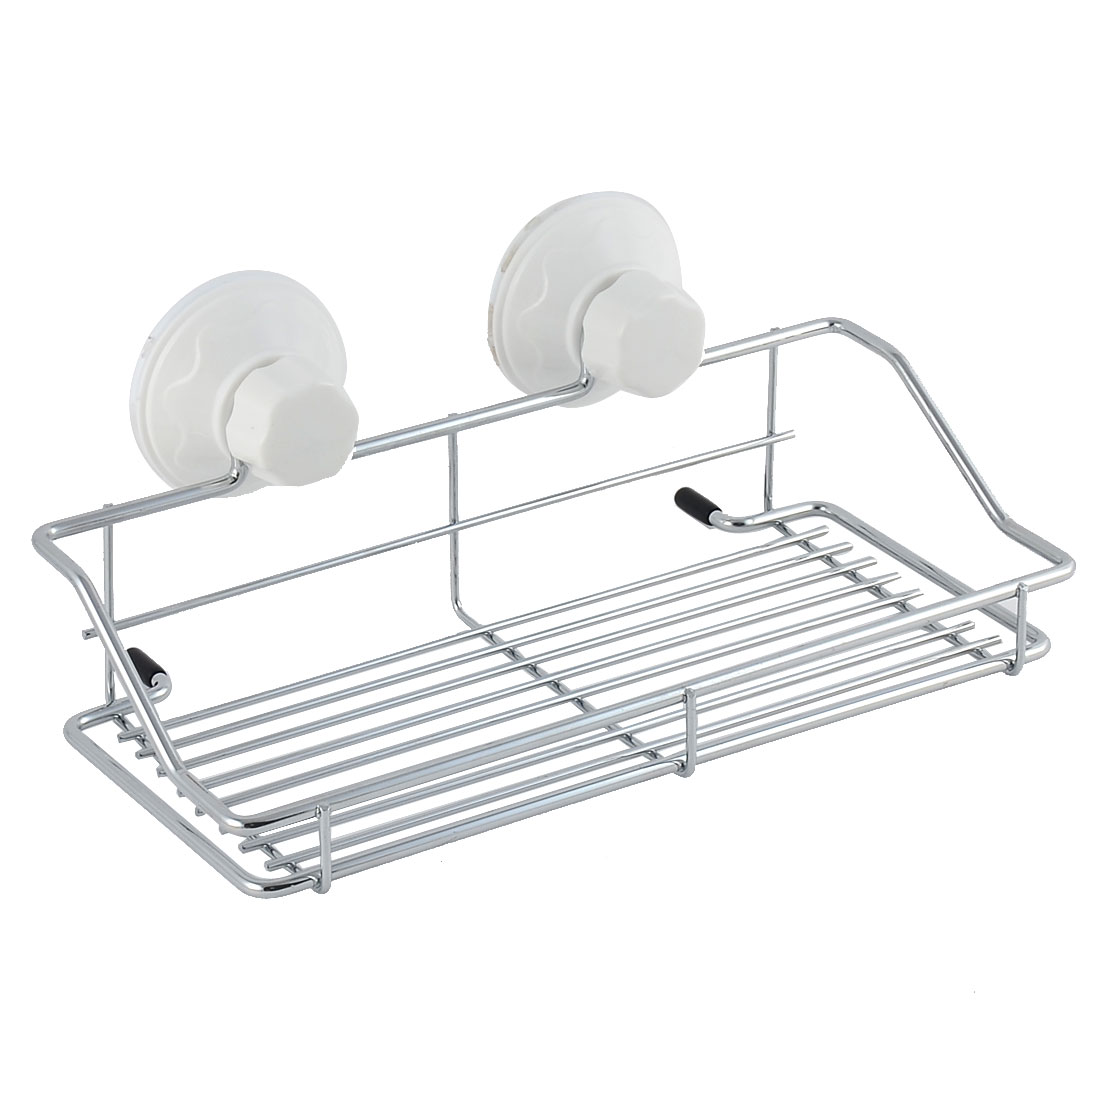 Unique Bargains Household Bathroom Suction Cup Storage Shelf Holder Rack White Silver Tone